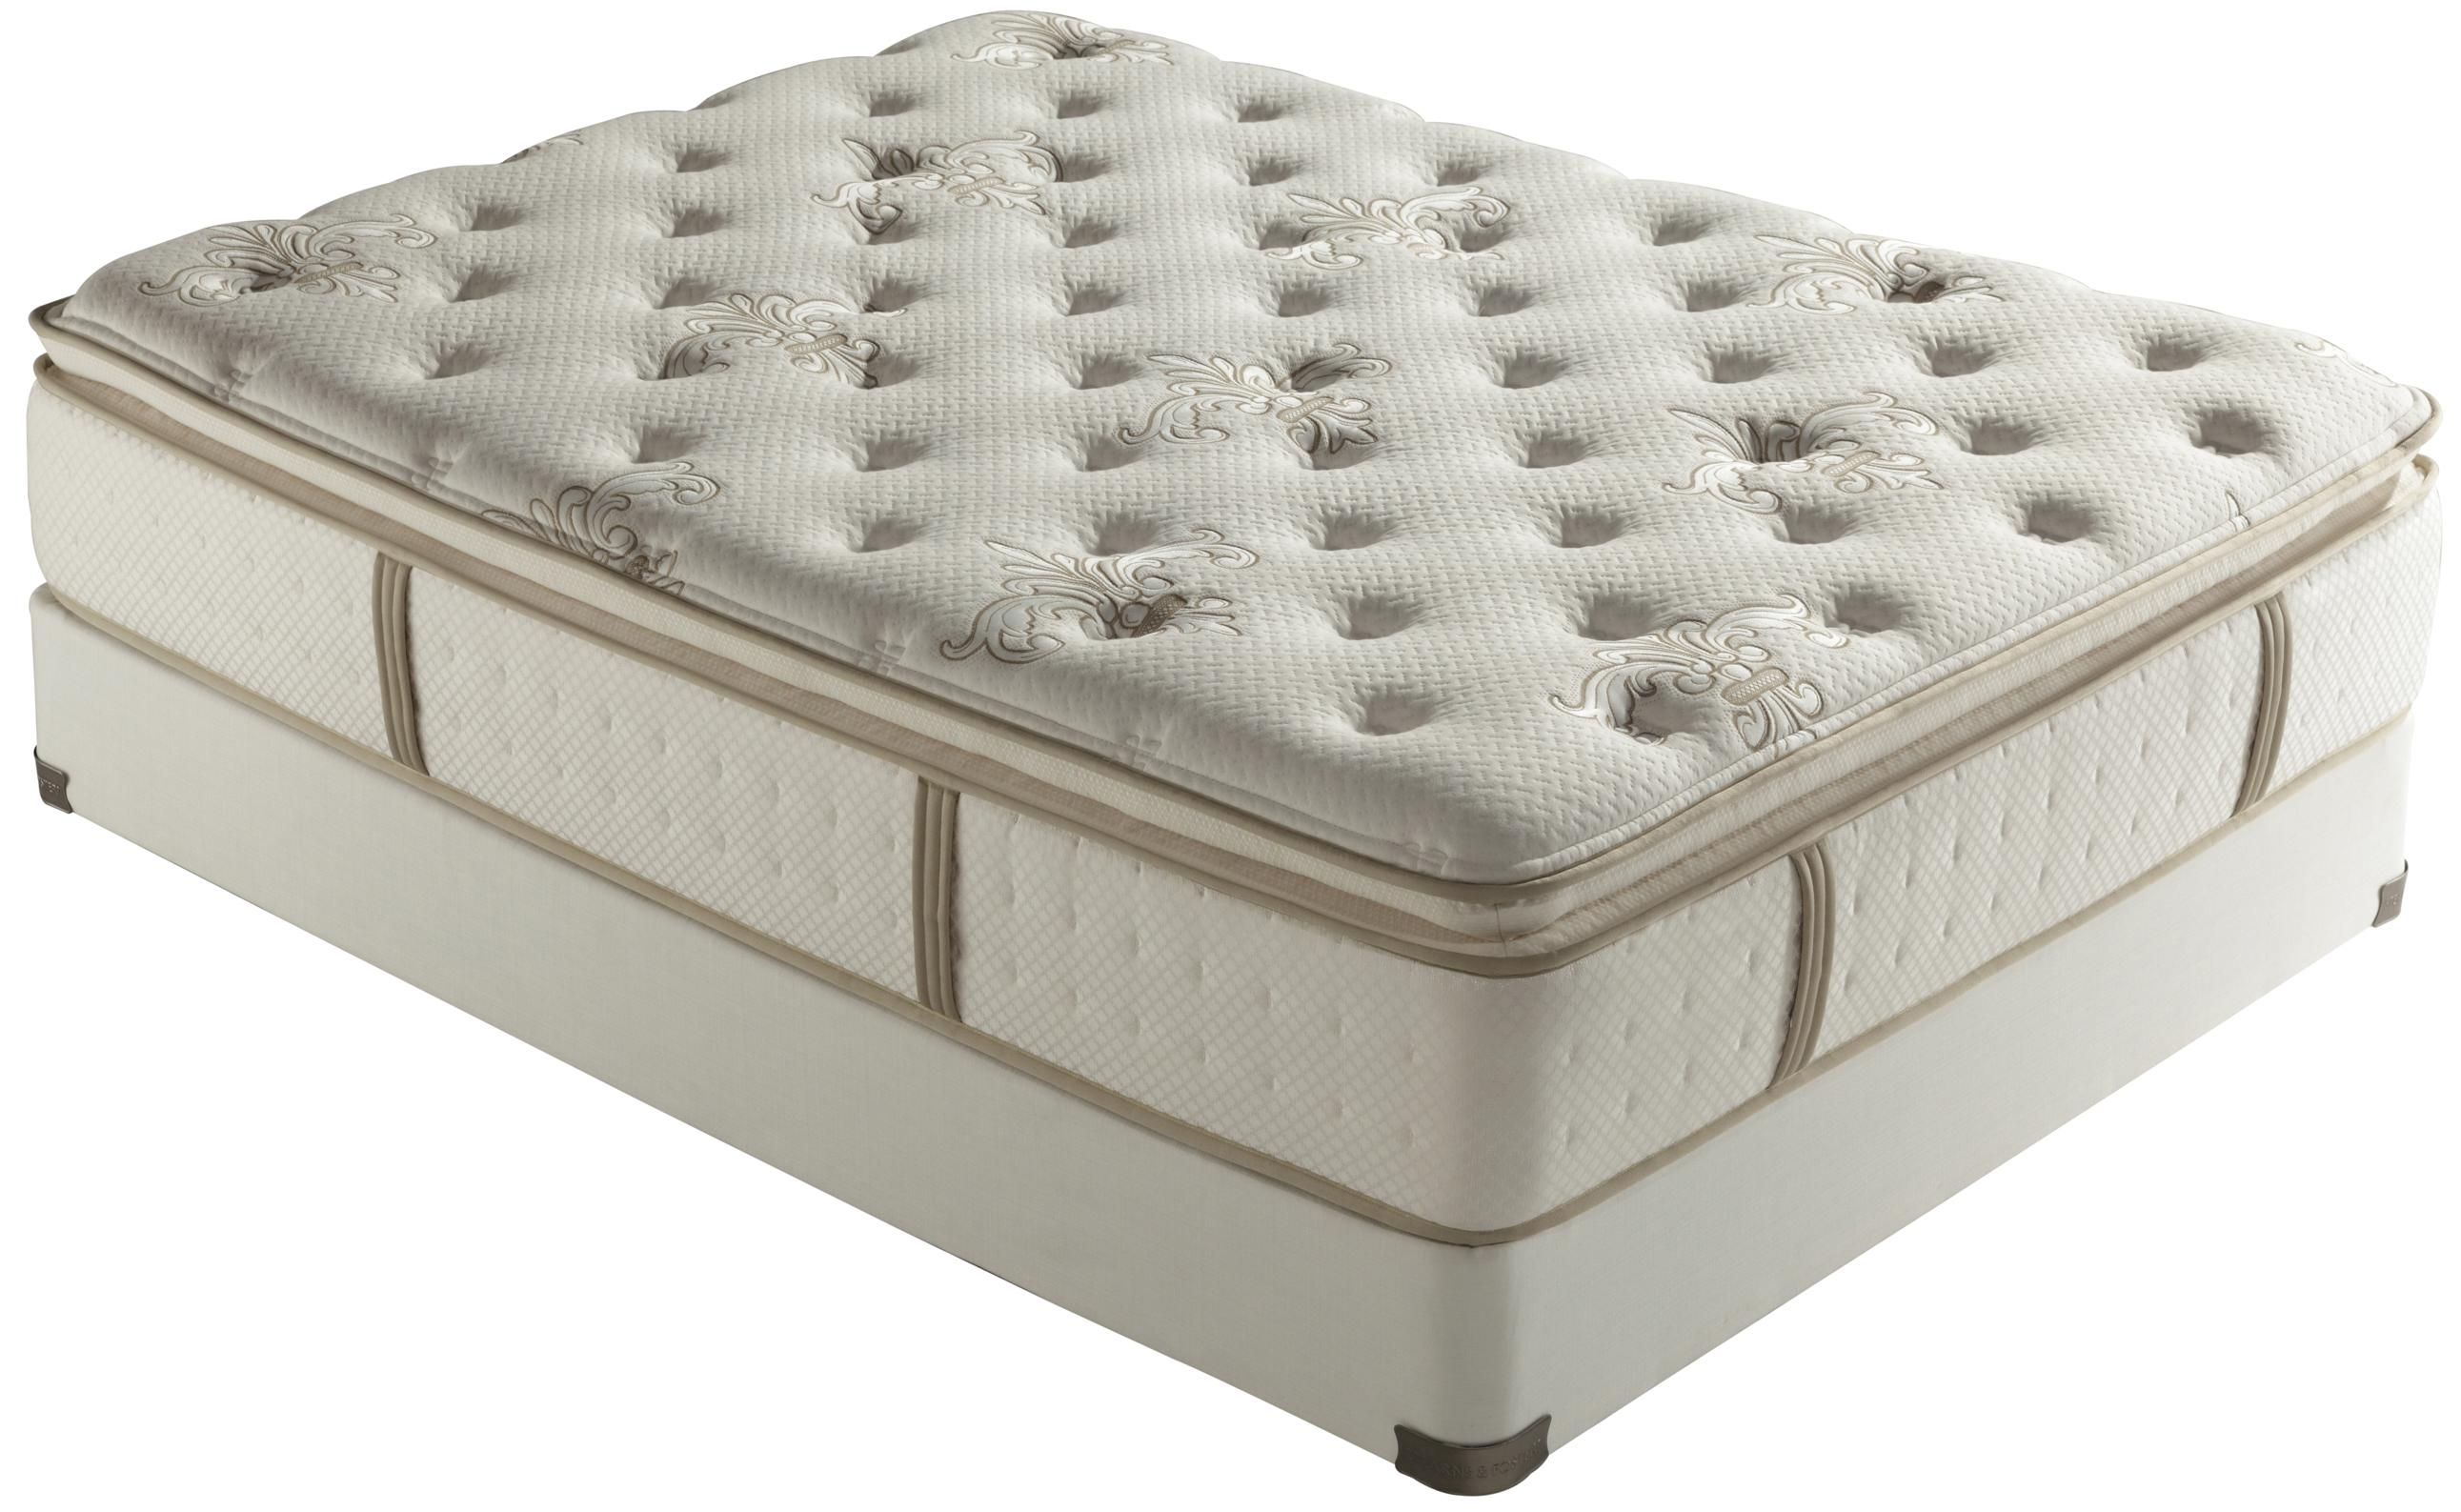 Low Profile Innerspring Mattress Stearns And Foster Core 2012 King Luxury Firm Euro Pillow